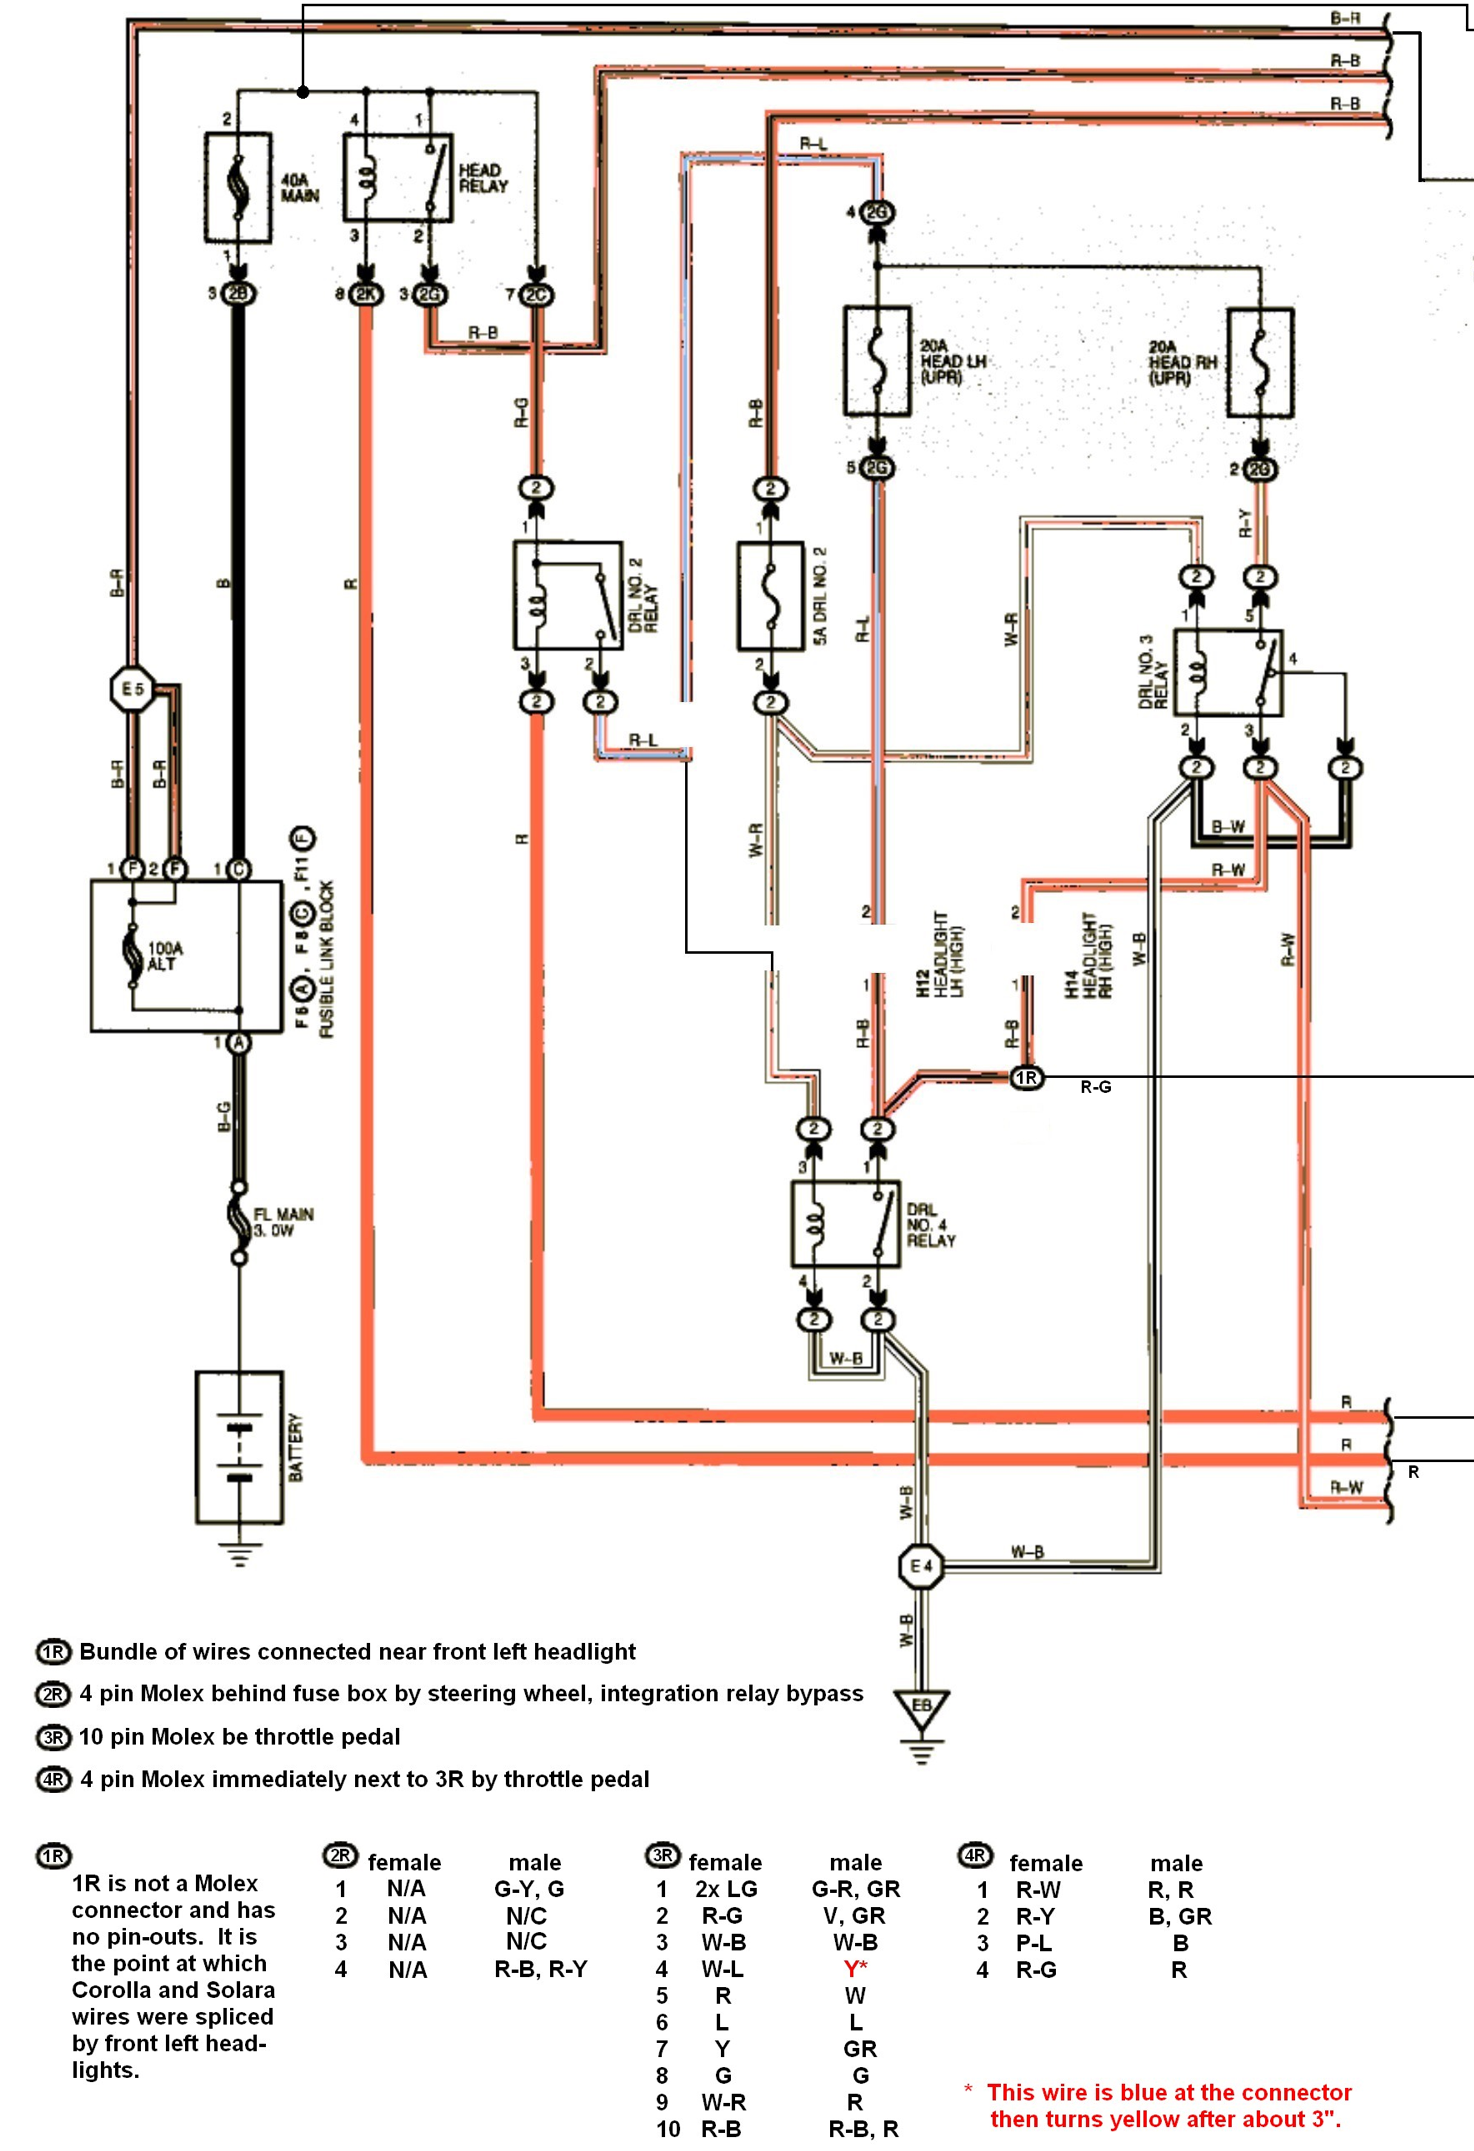 headlights_hybrid_schematic_panel1.png